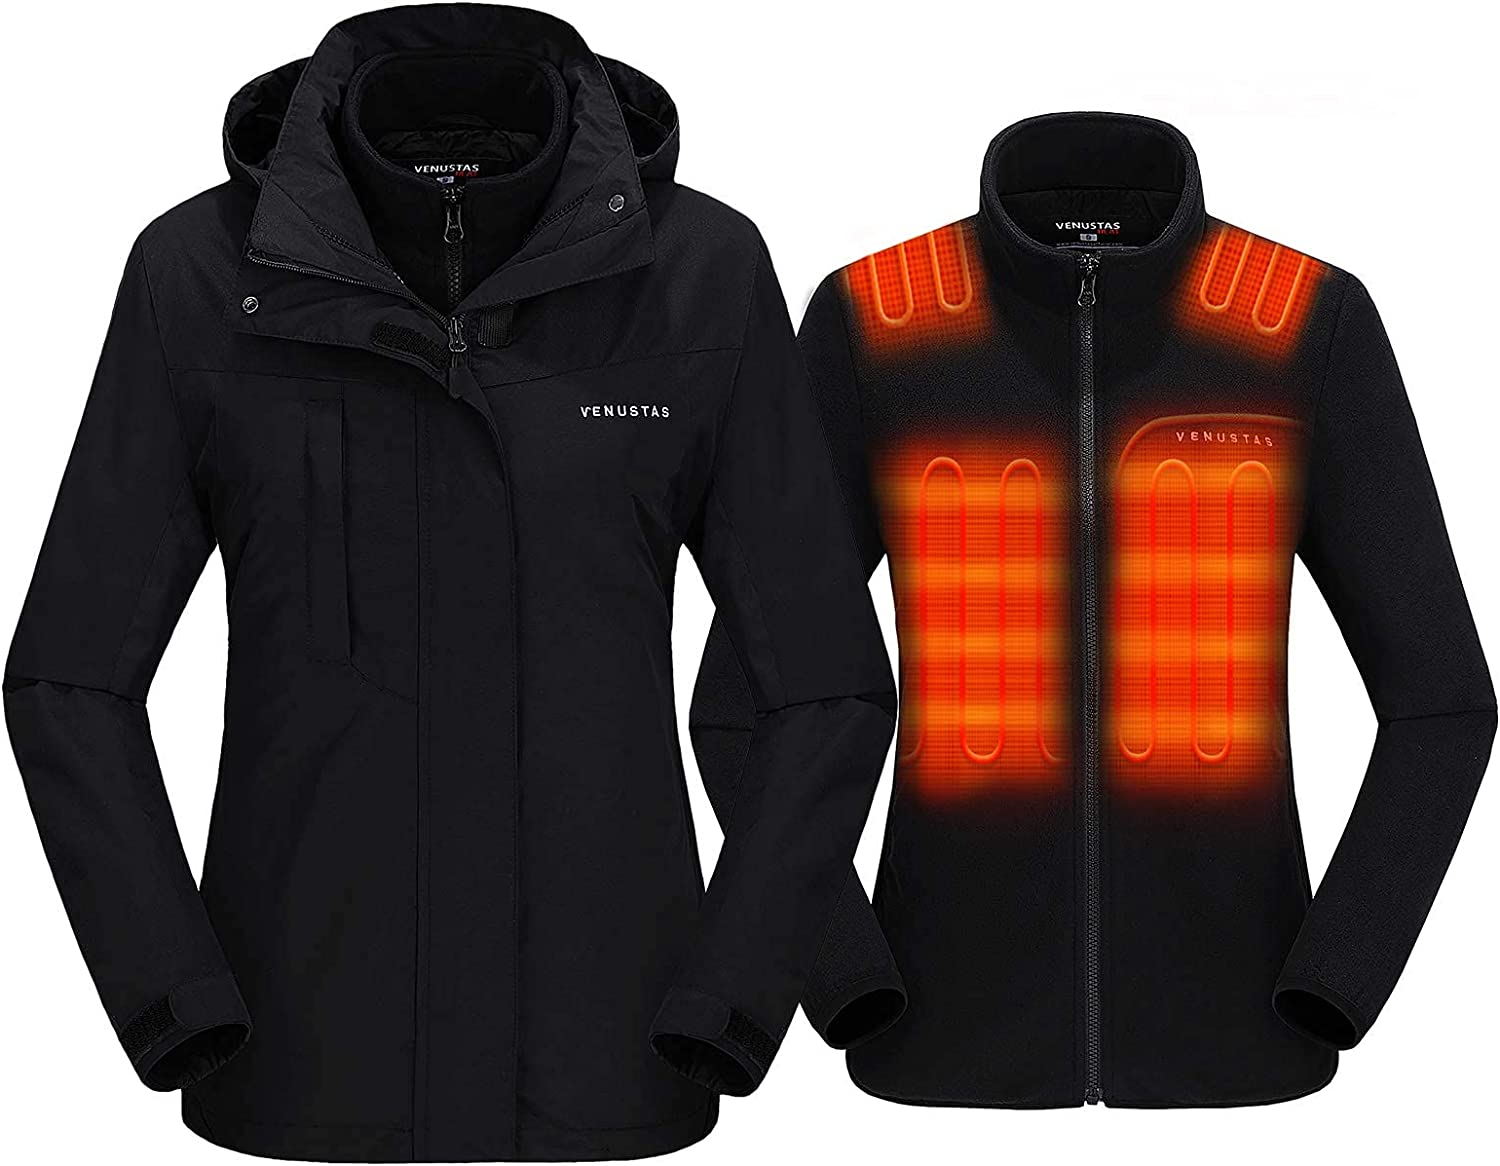 Venustas OFFicial Women's 3-in-1 Heated Jacket Pack with 7.4V Max 40% OFF Sk Battery